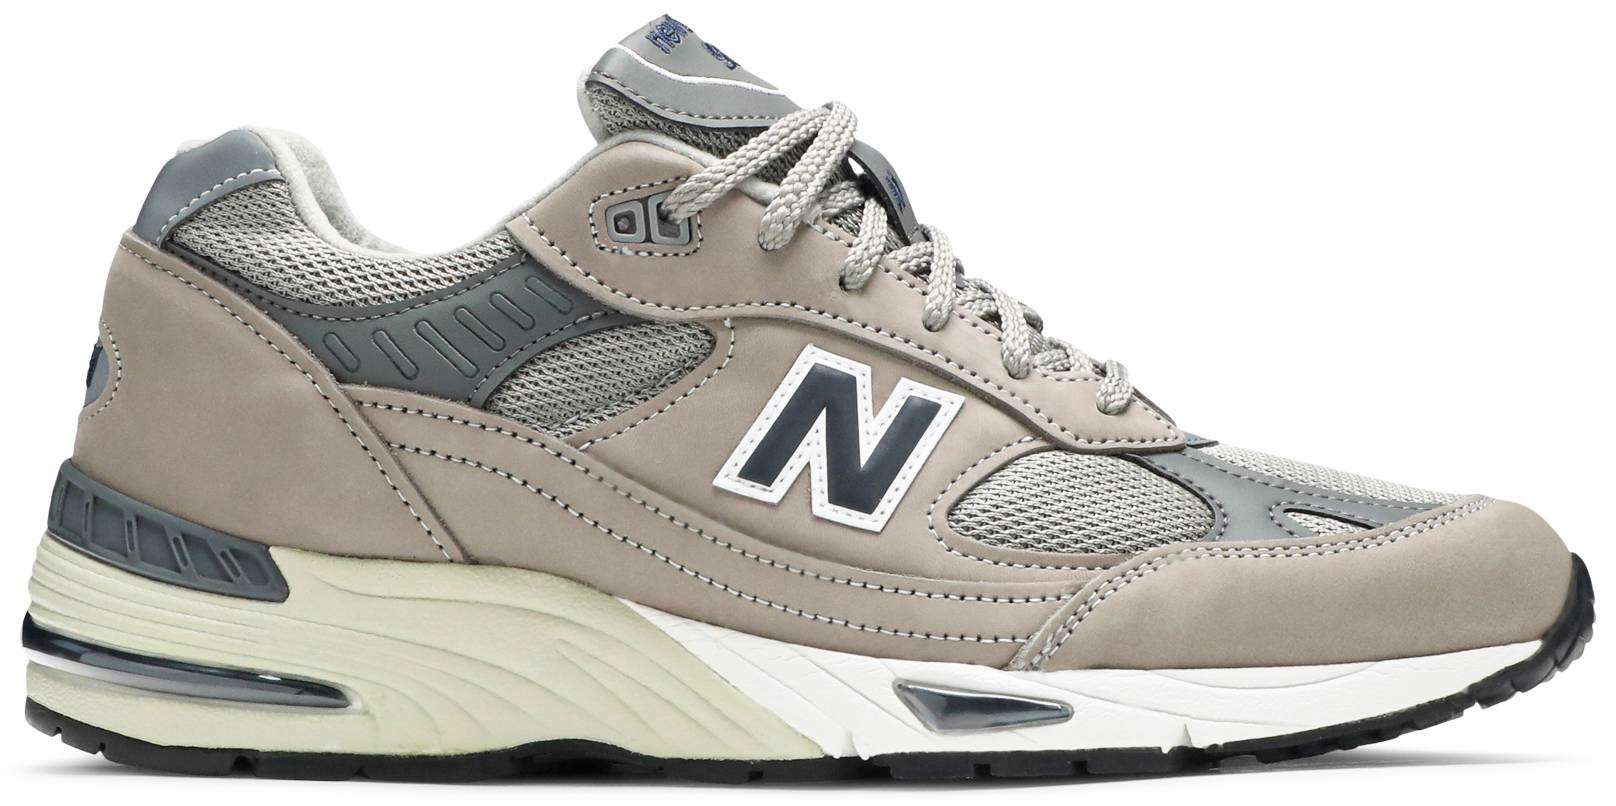 Giày New Balance 991 Made in England '20th Anniversary' M991ANI